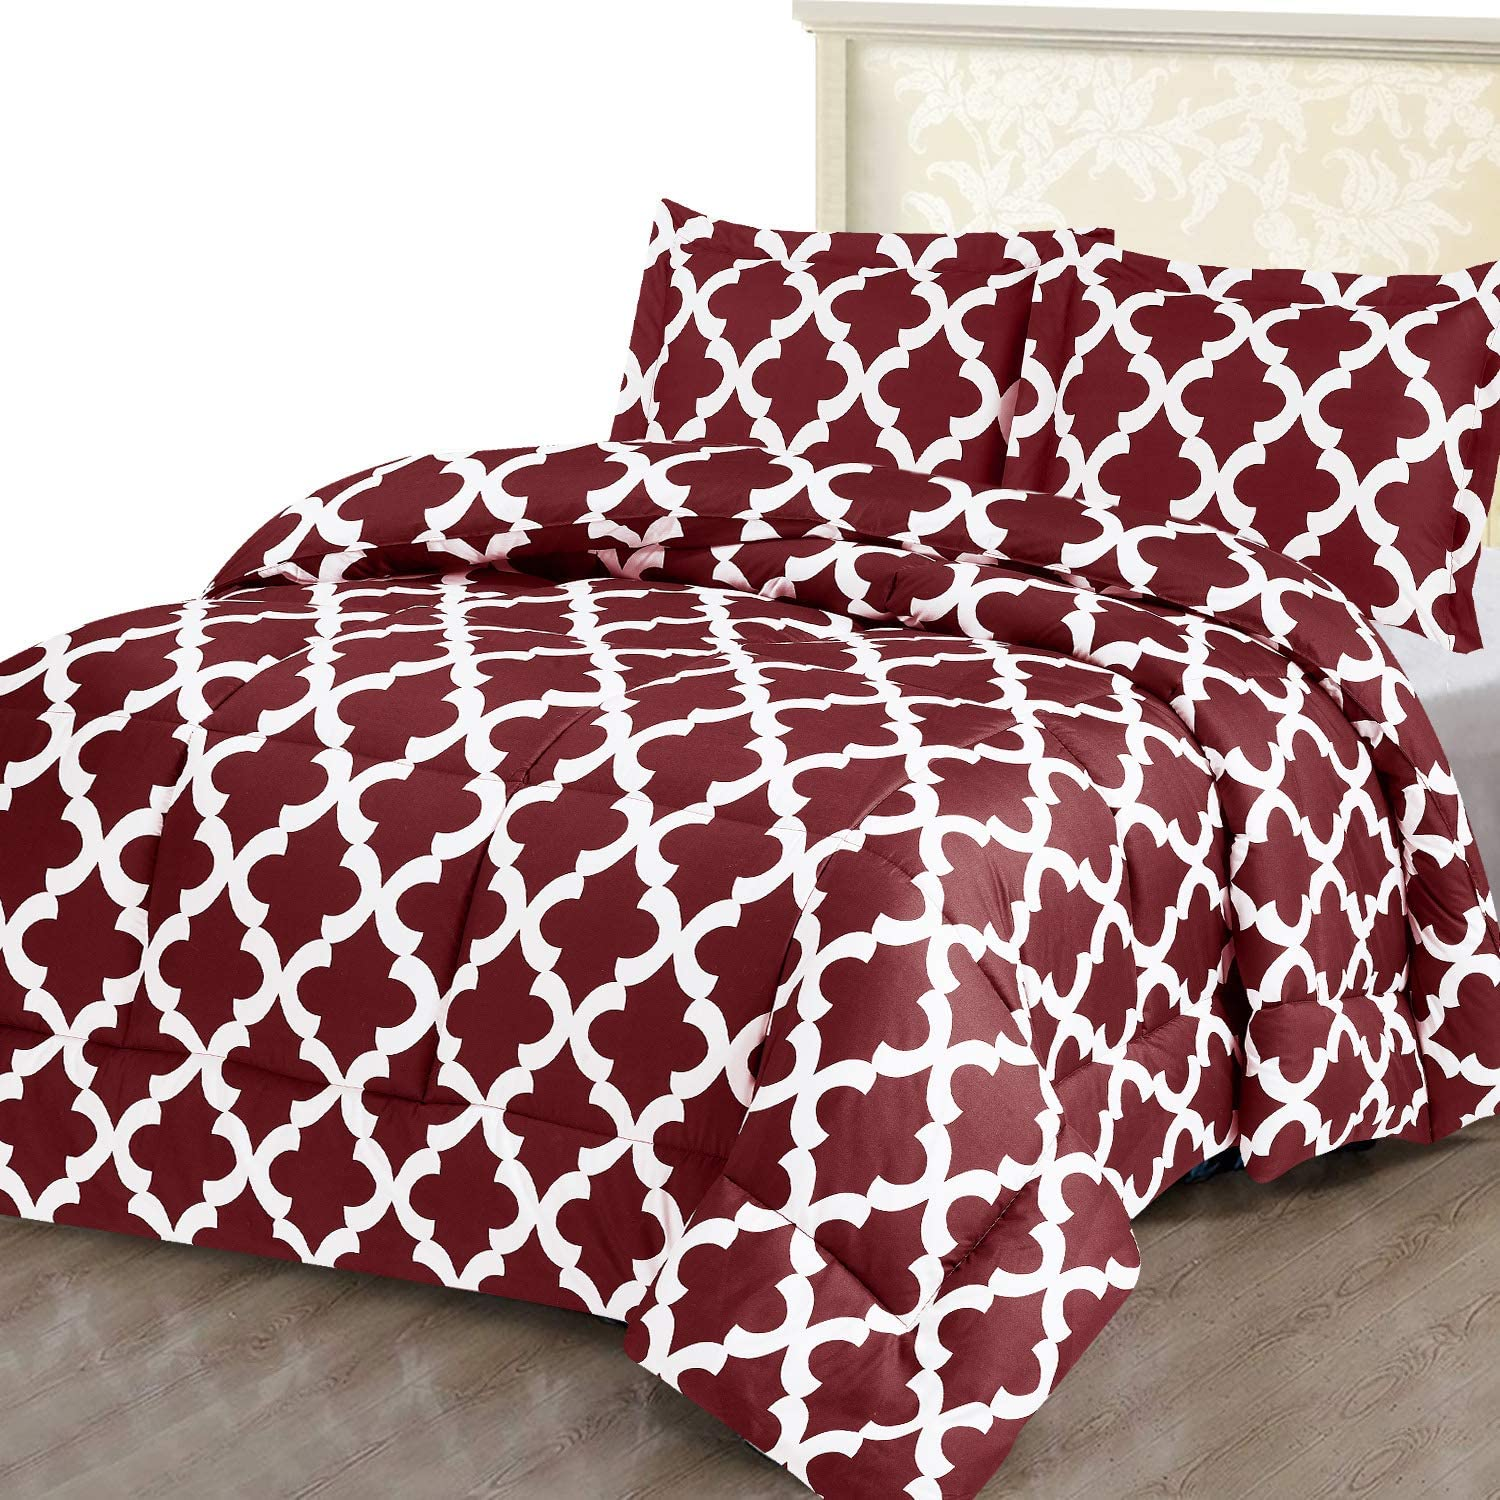 Utopia Bedding Printed Comforter Set (Queen/Full, Red) with 2 Pillow Shams - Luxurious Brushed Microfiber - Down Alternative Comforter - Soft and Comfortable - Machine Washable